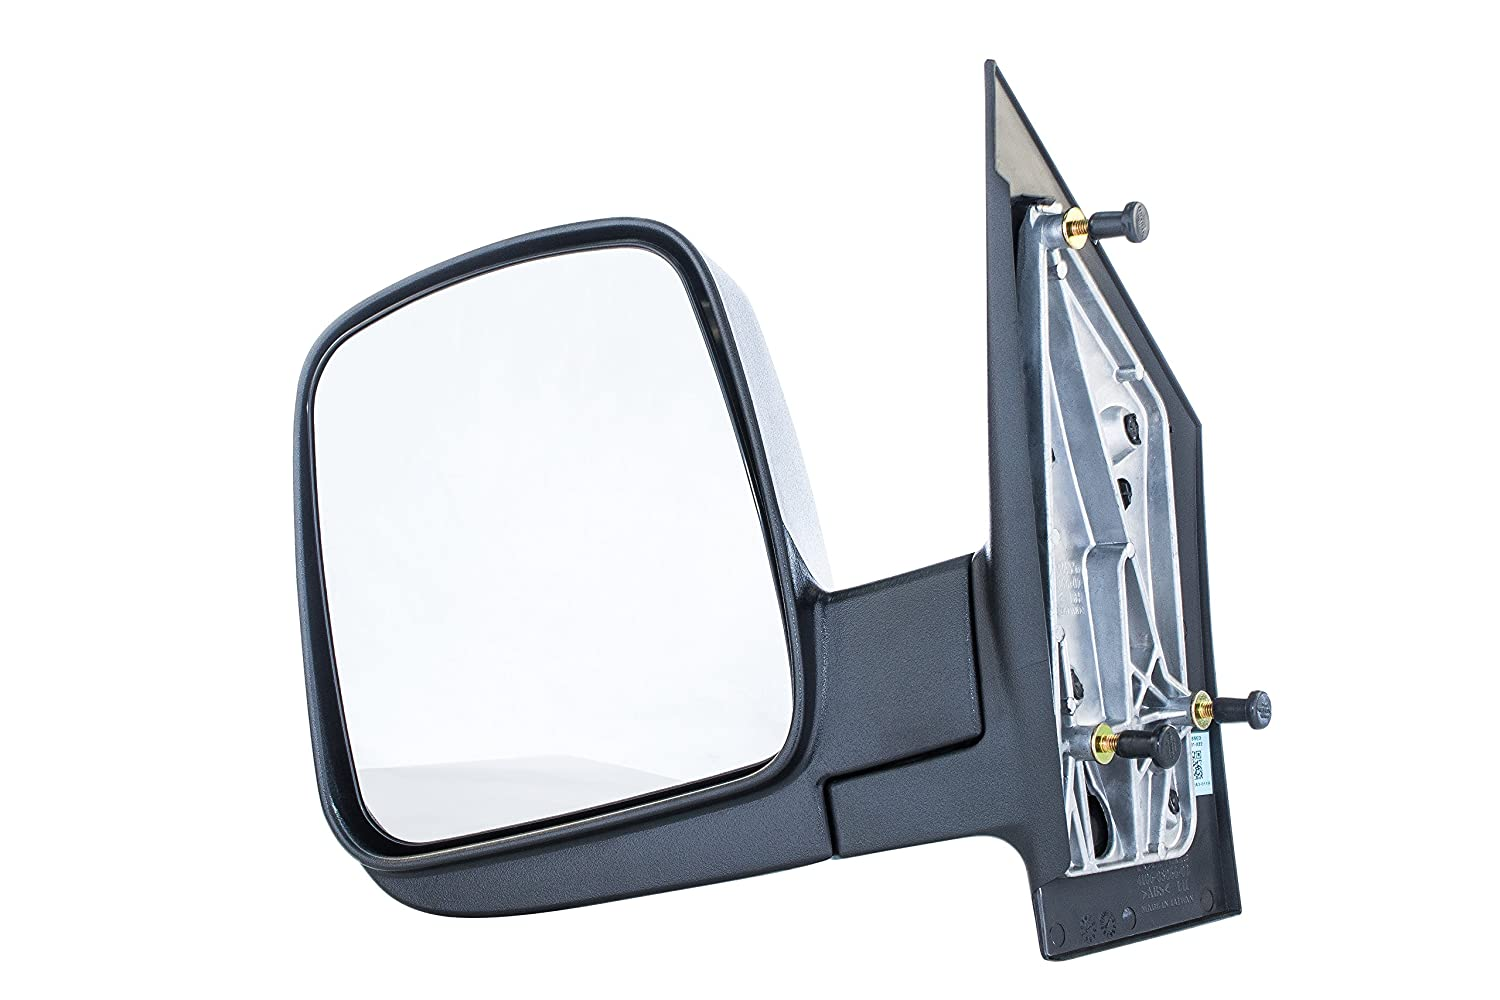 Driver Side Mirror for Chevy Express, GMC Savana (2003 2004 2005 2006 2007 2008 2009 2010 2011 2012 2013 2014 2015 2016 2017) Textured Non-Heated Folding Left Outside Rear View Replacement Door Mirror Dependable Direct